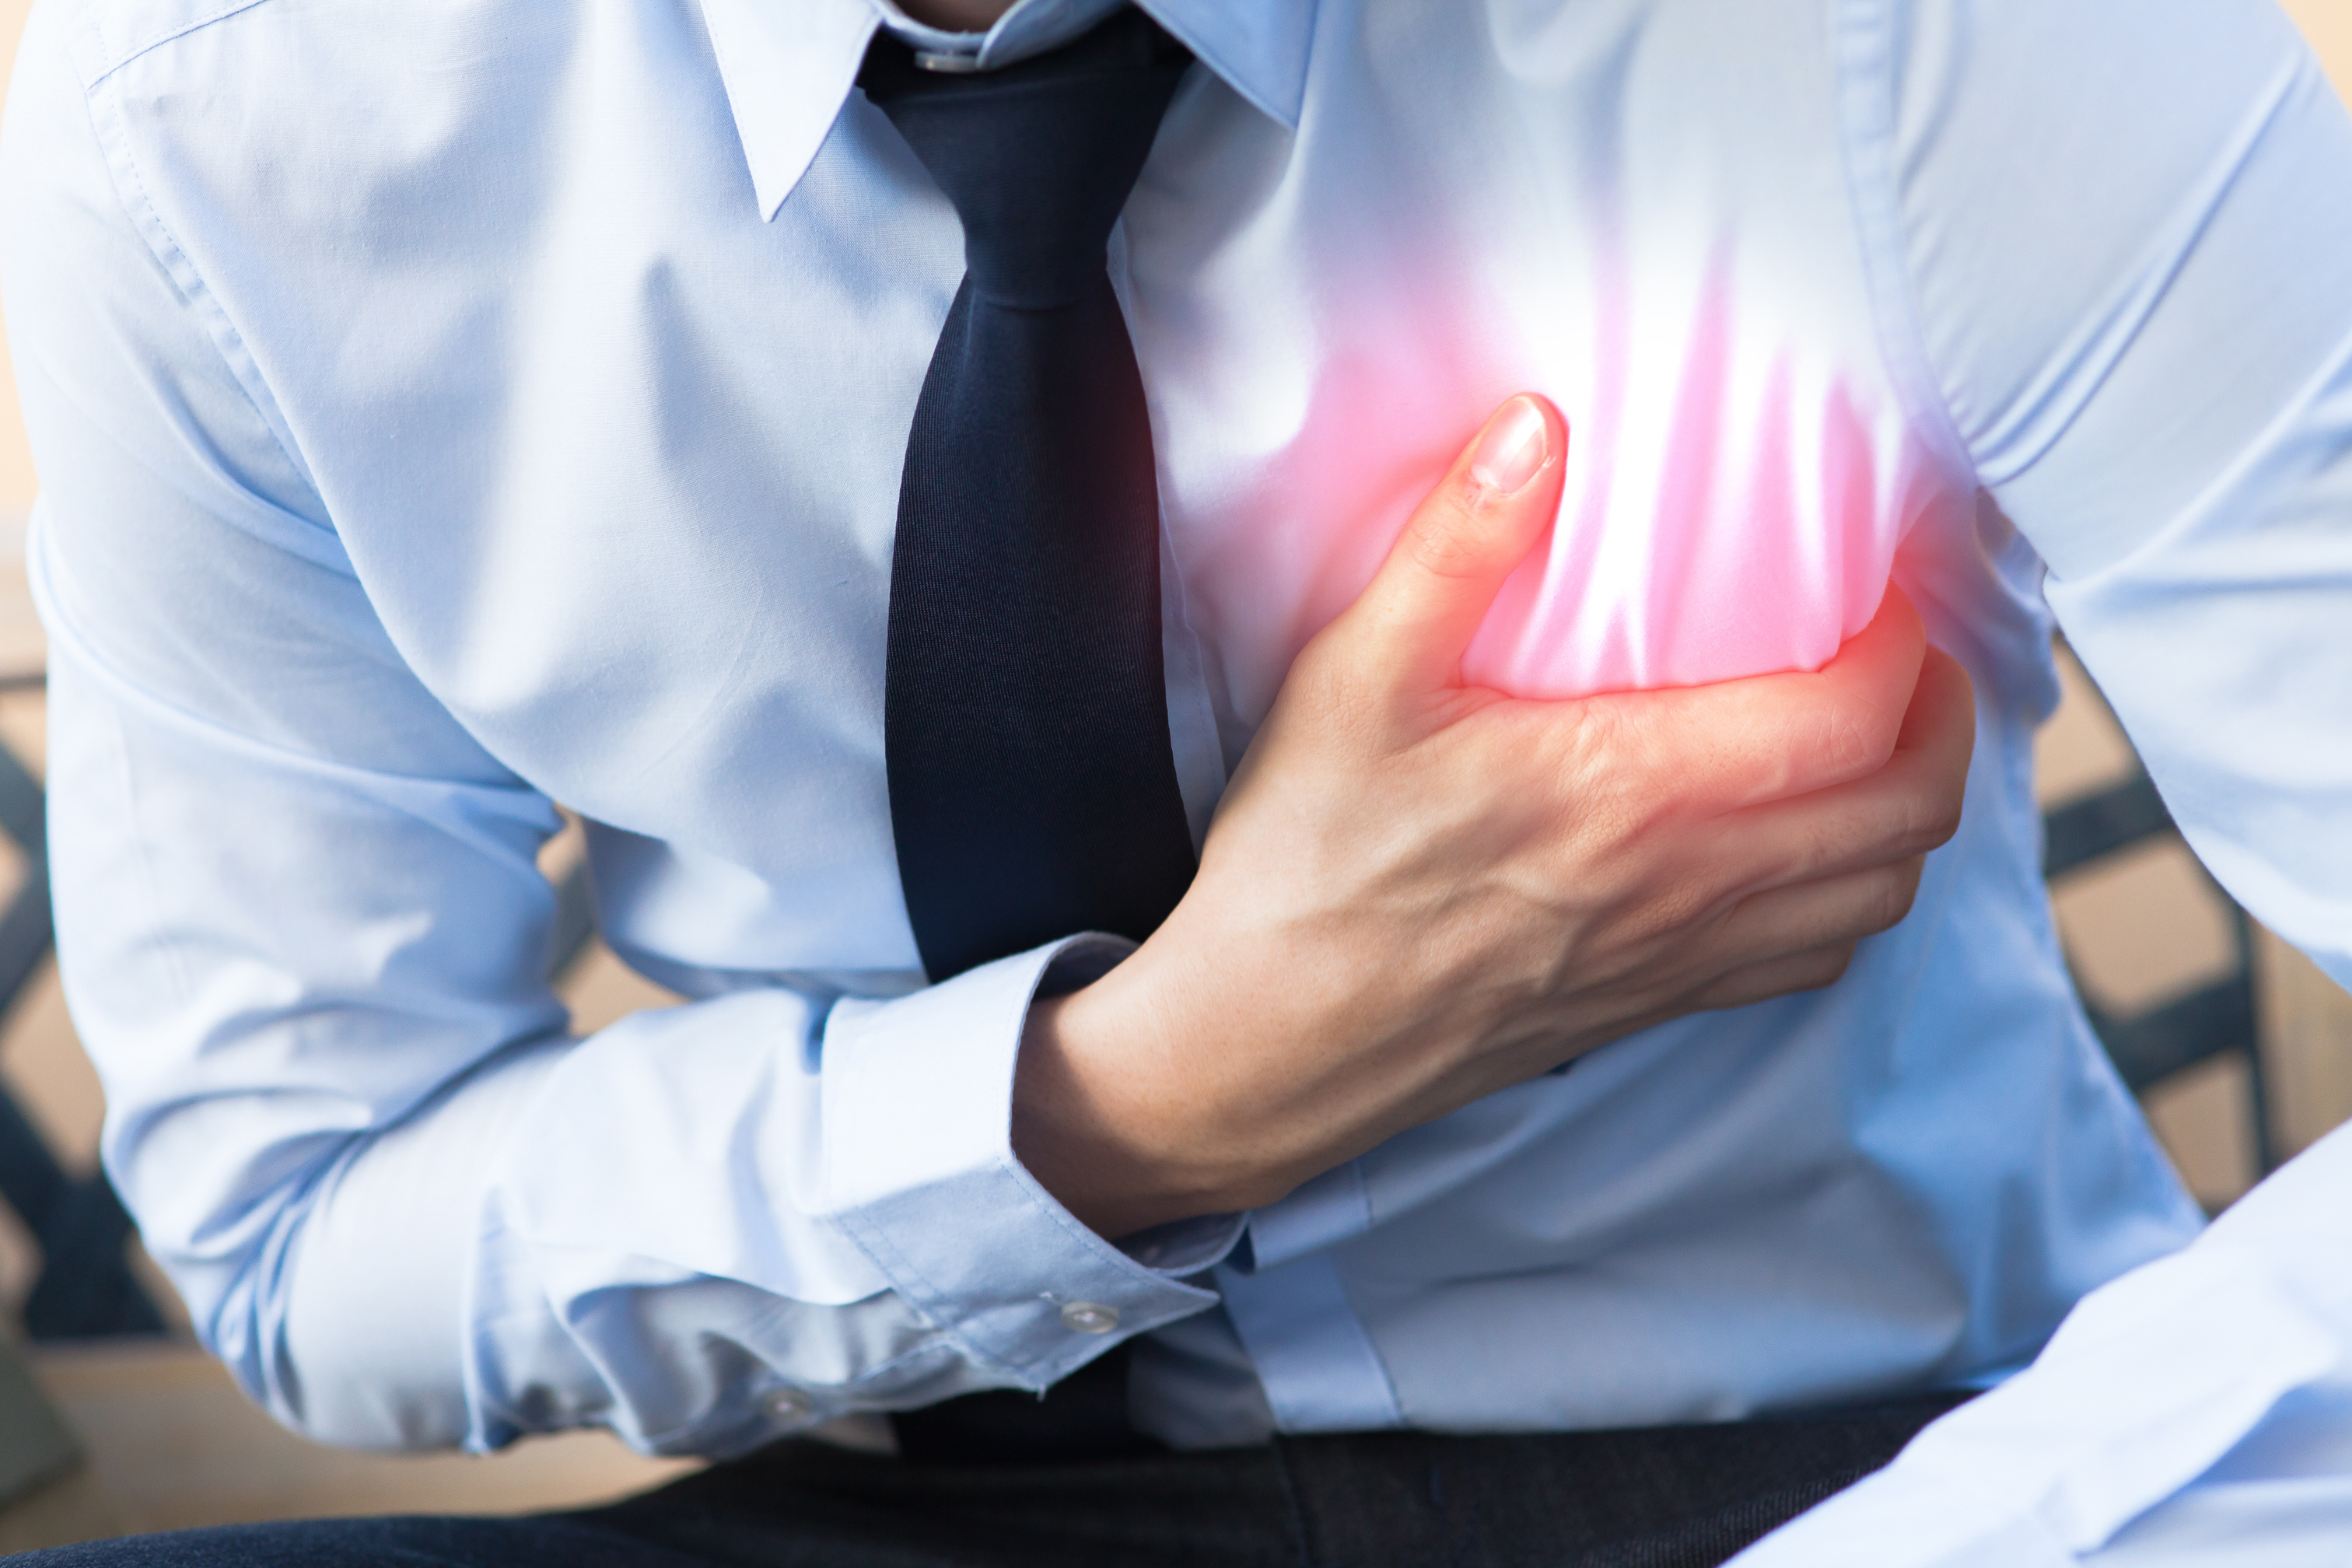 Heart attacks could be predicted years in advance with simple X-ray, study concludes